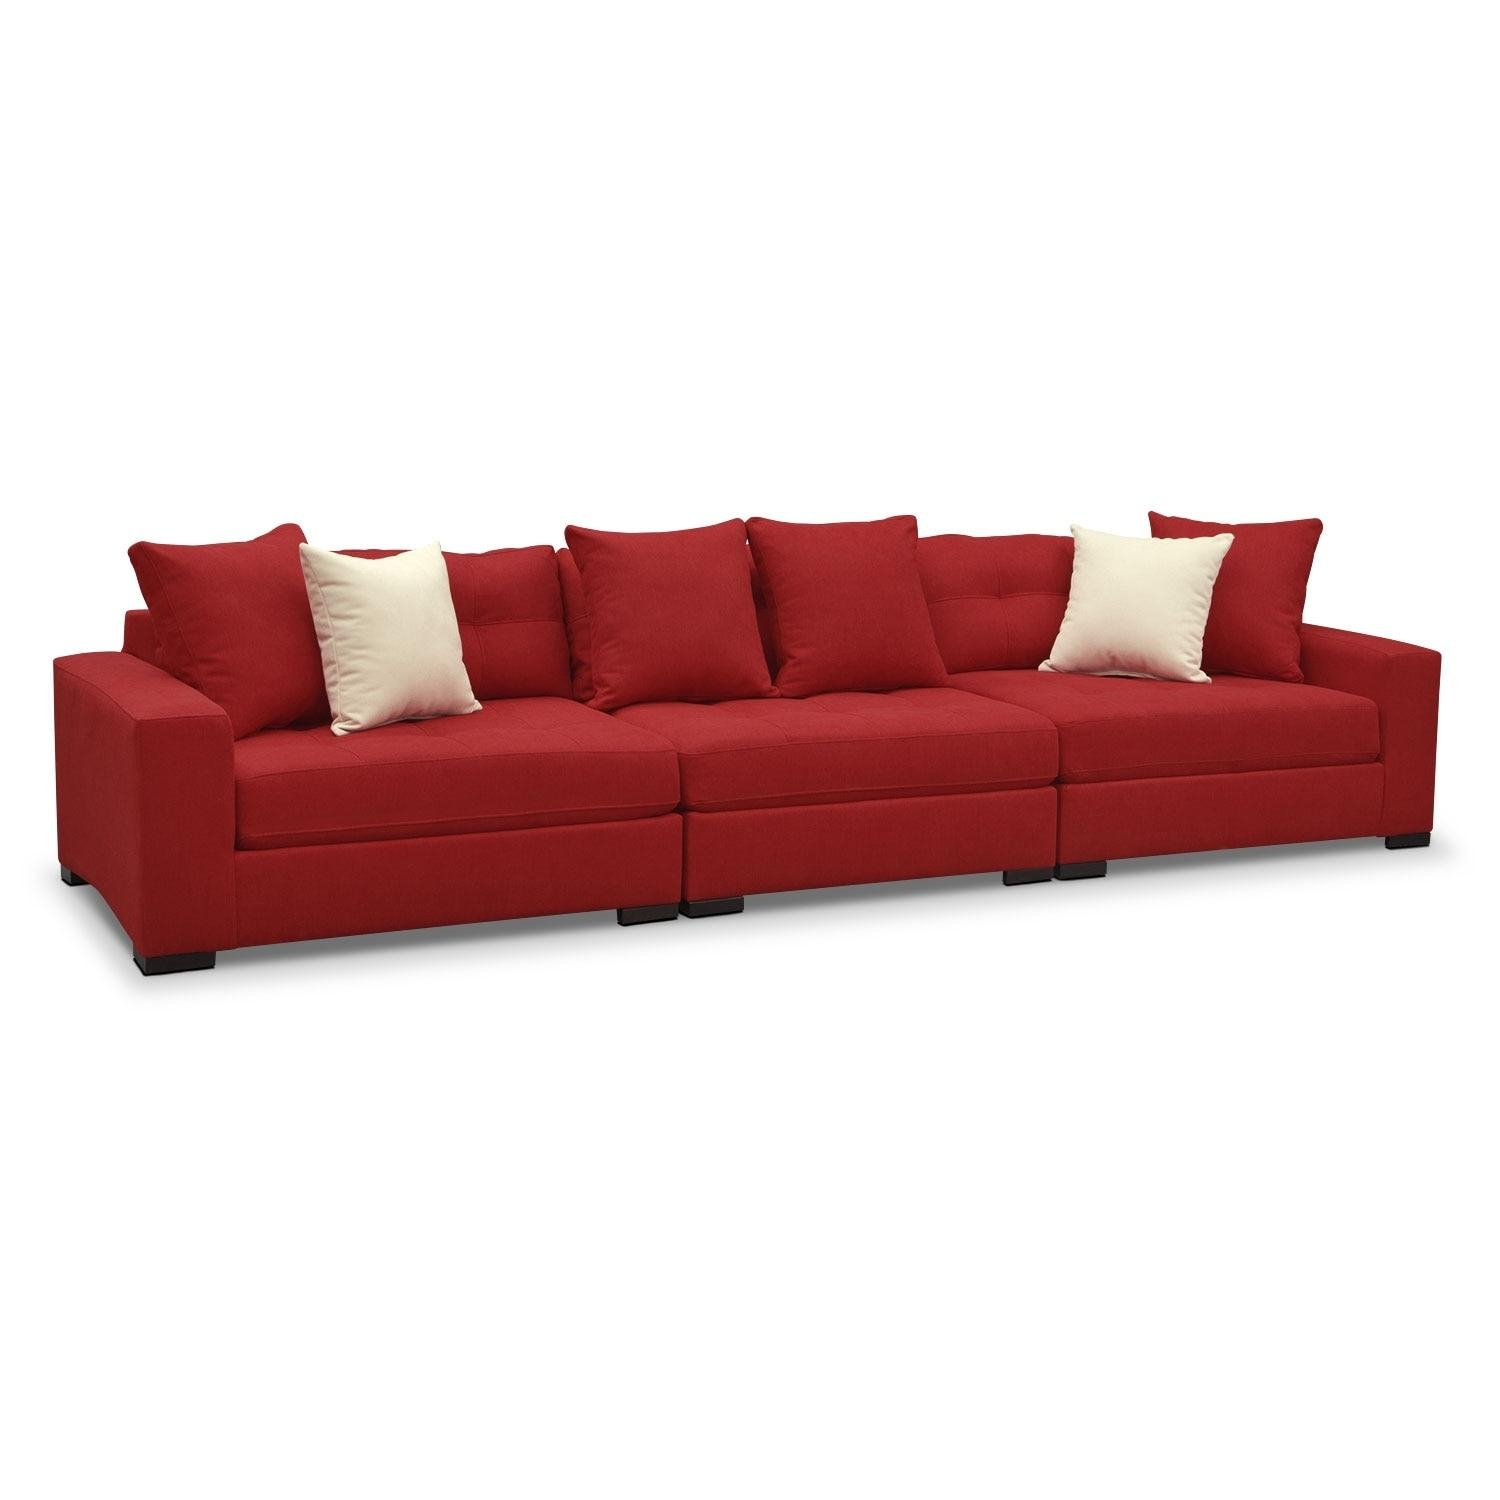 Venti Modular Sofa – Red | Value City Furniture With Regard To Value City Sofas (View 9 of 20)